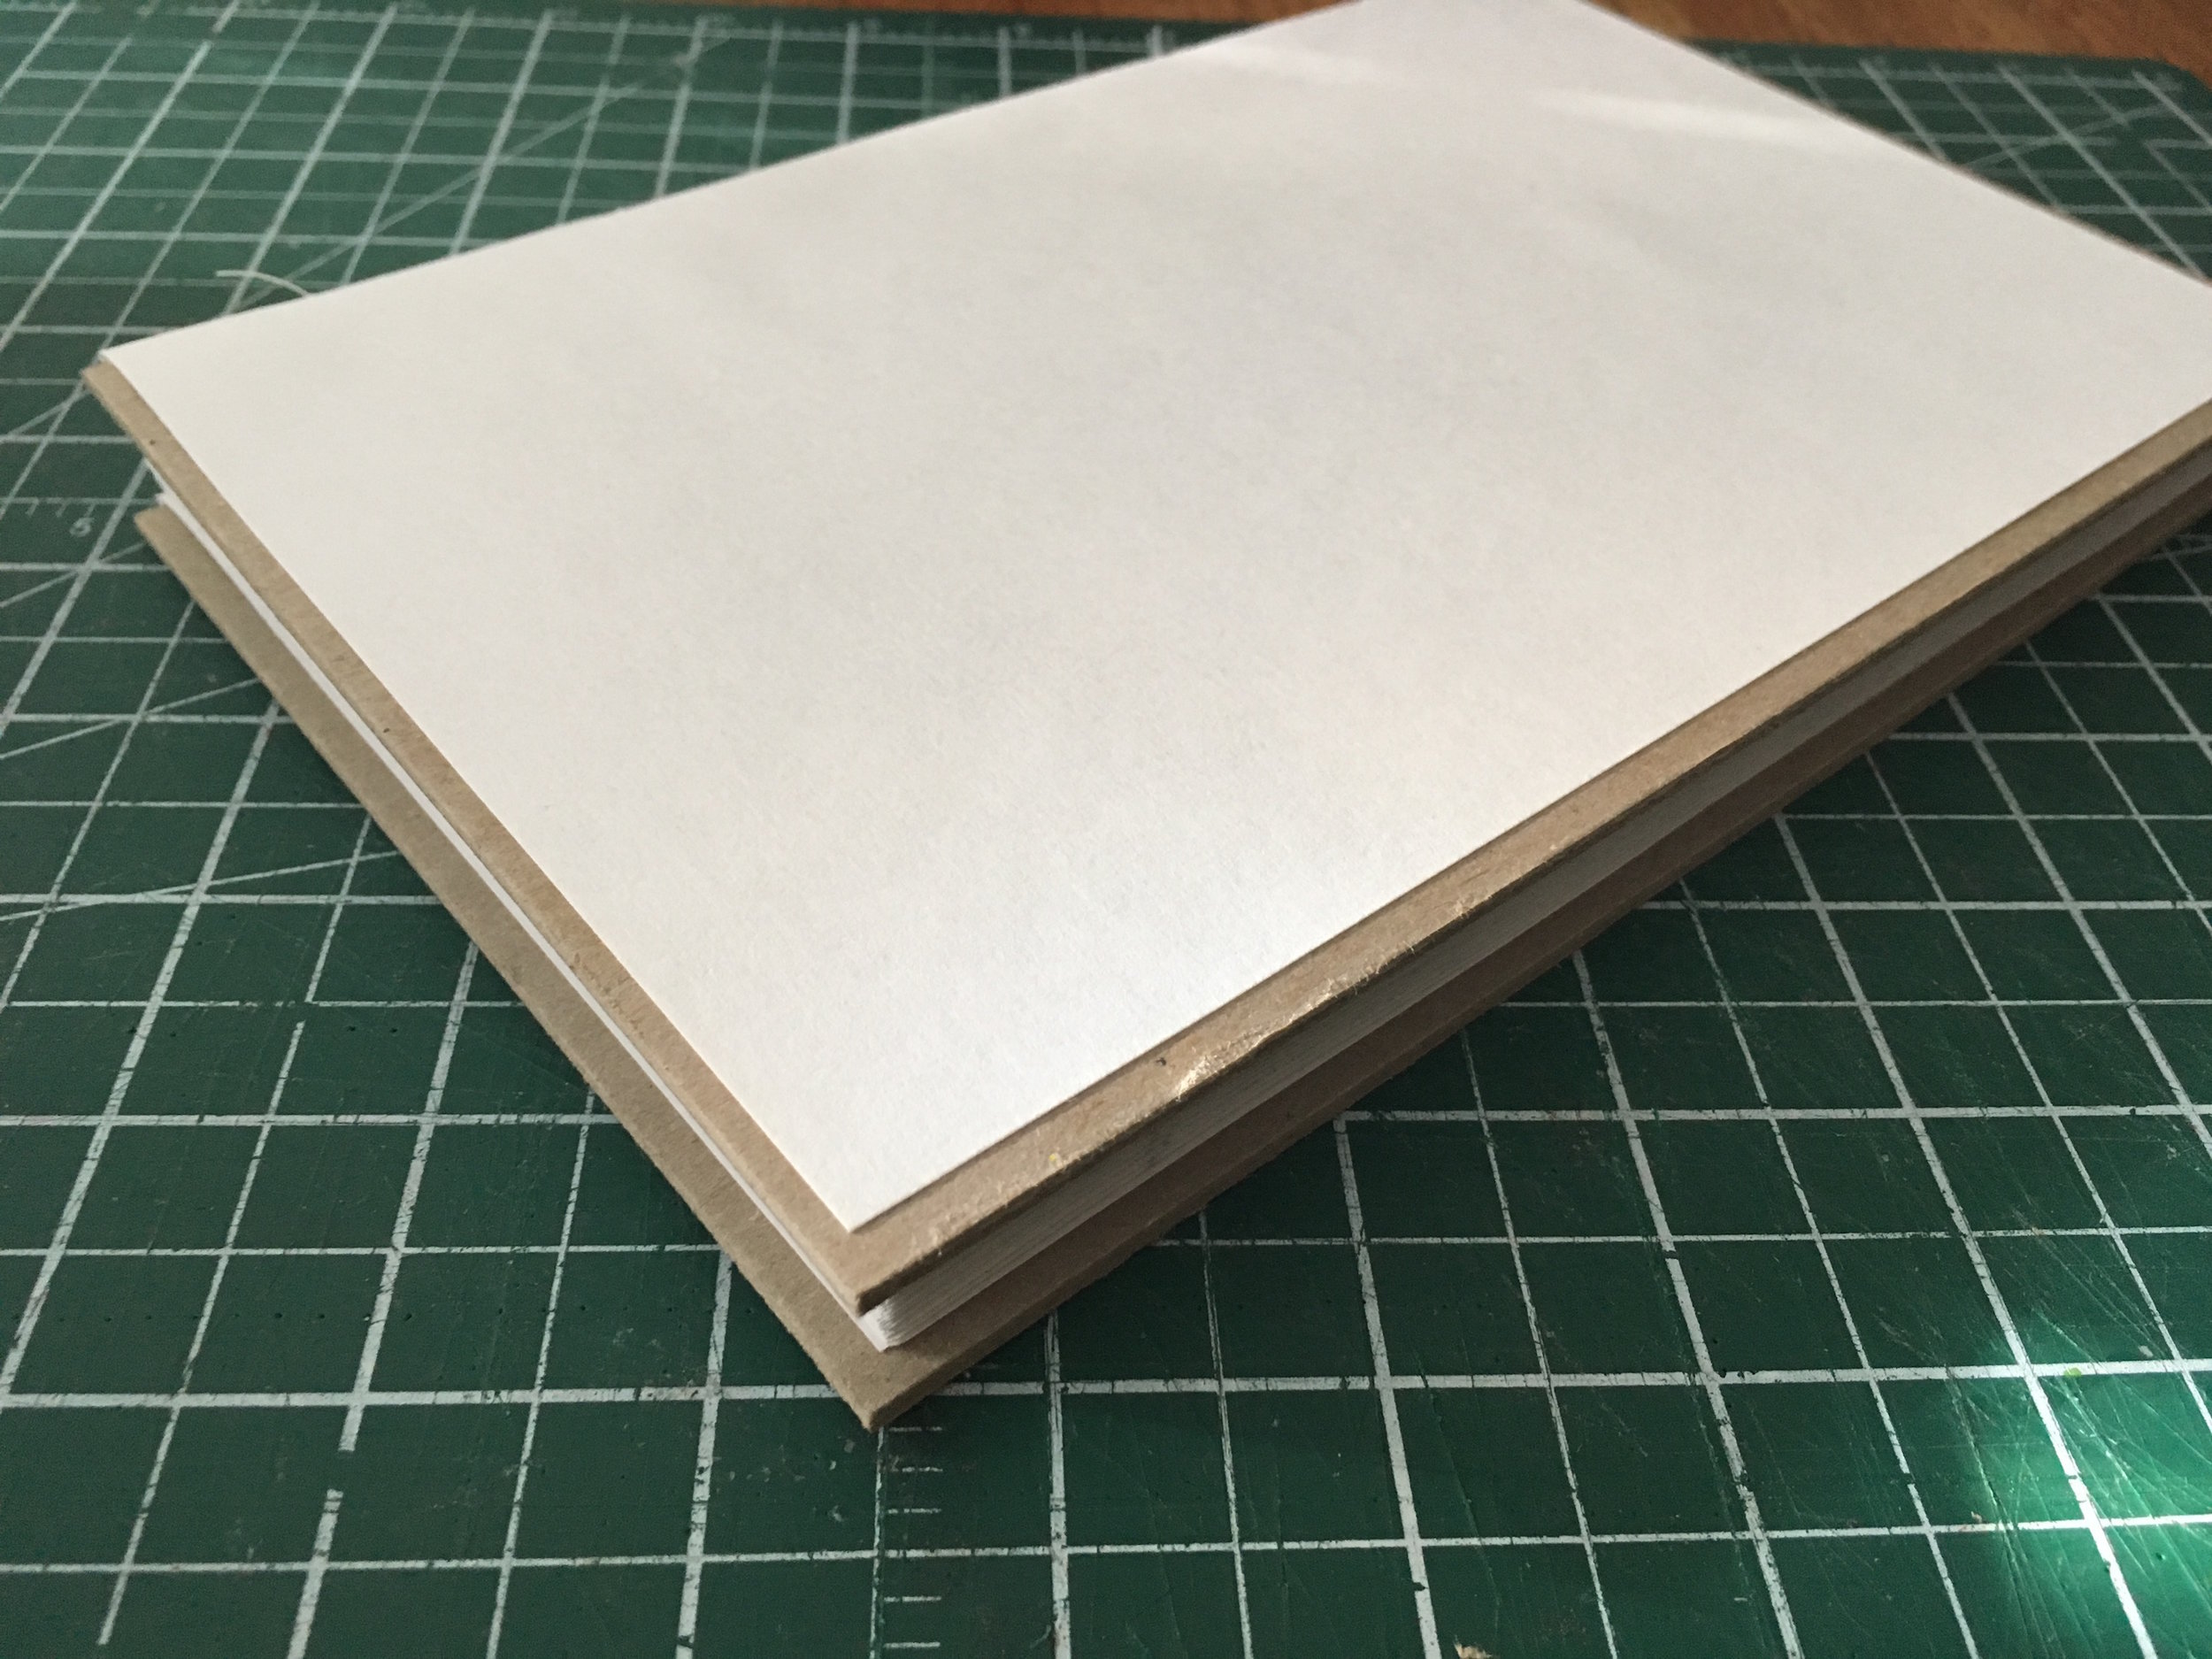 Step 3: - The boards are added, and the card stock is glued down over them. You can see the overhang here.